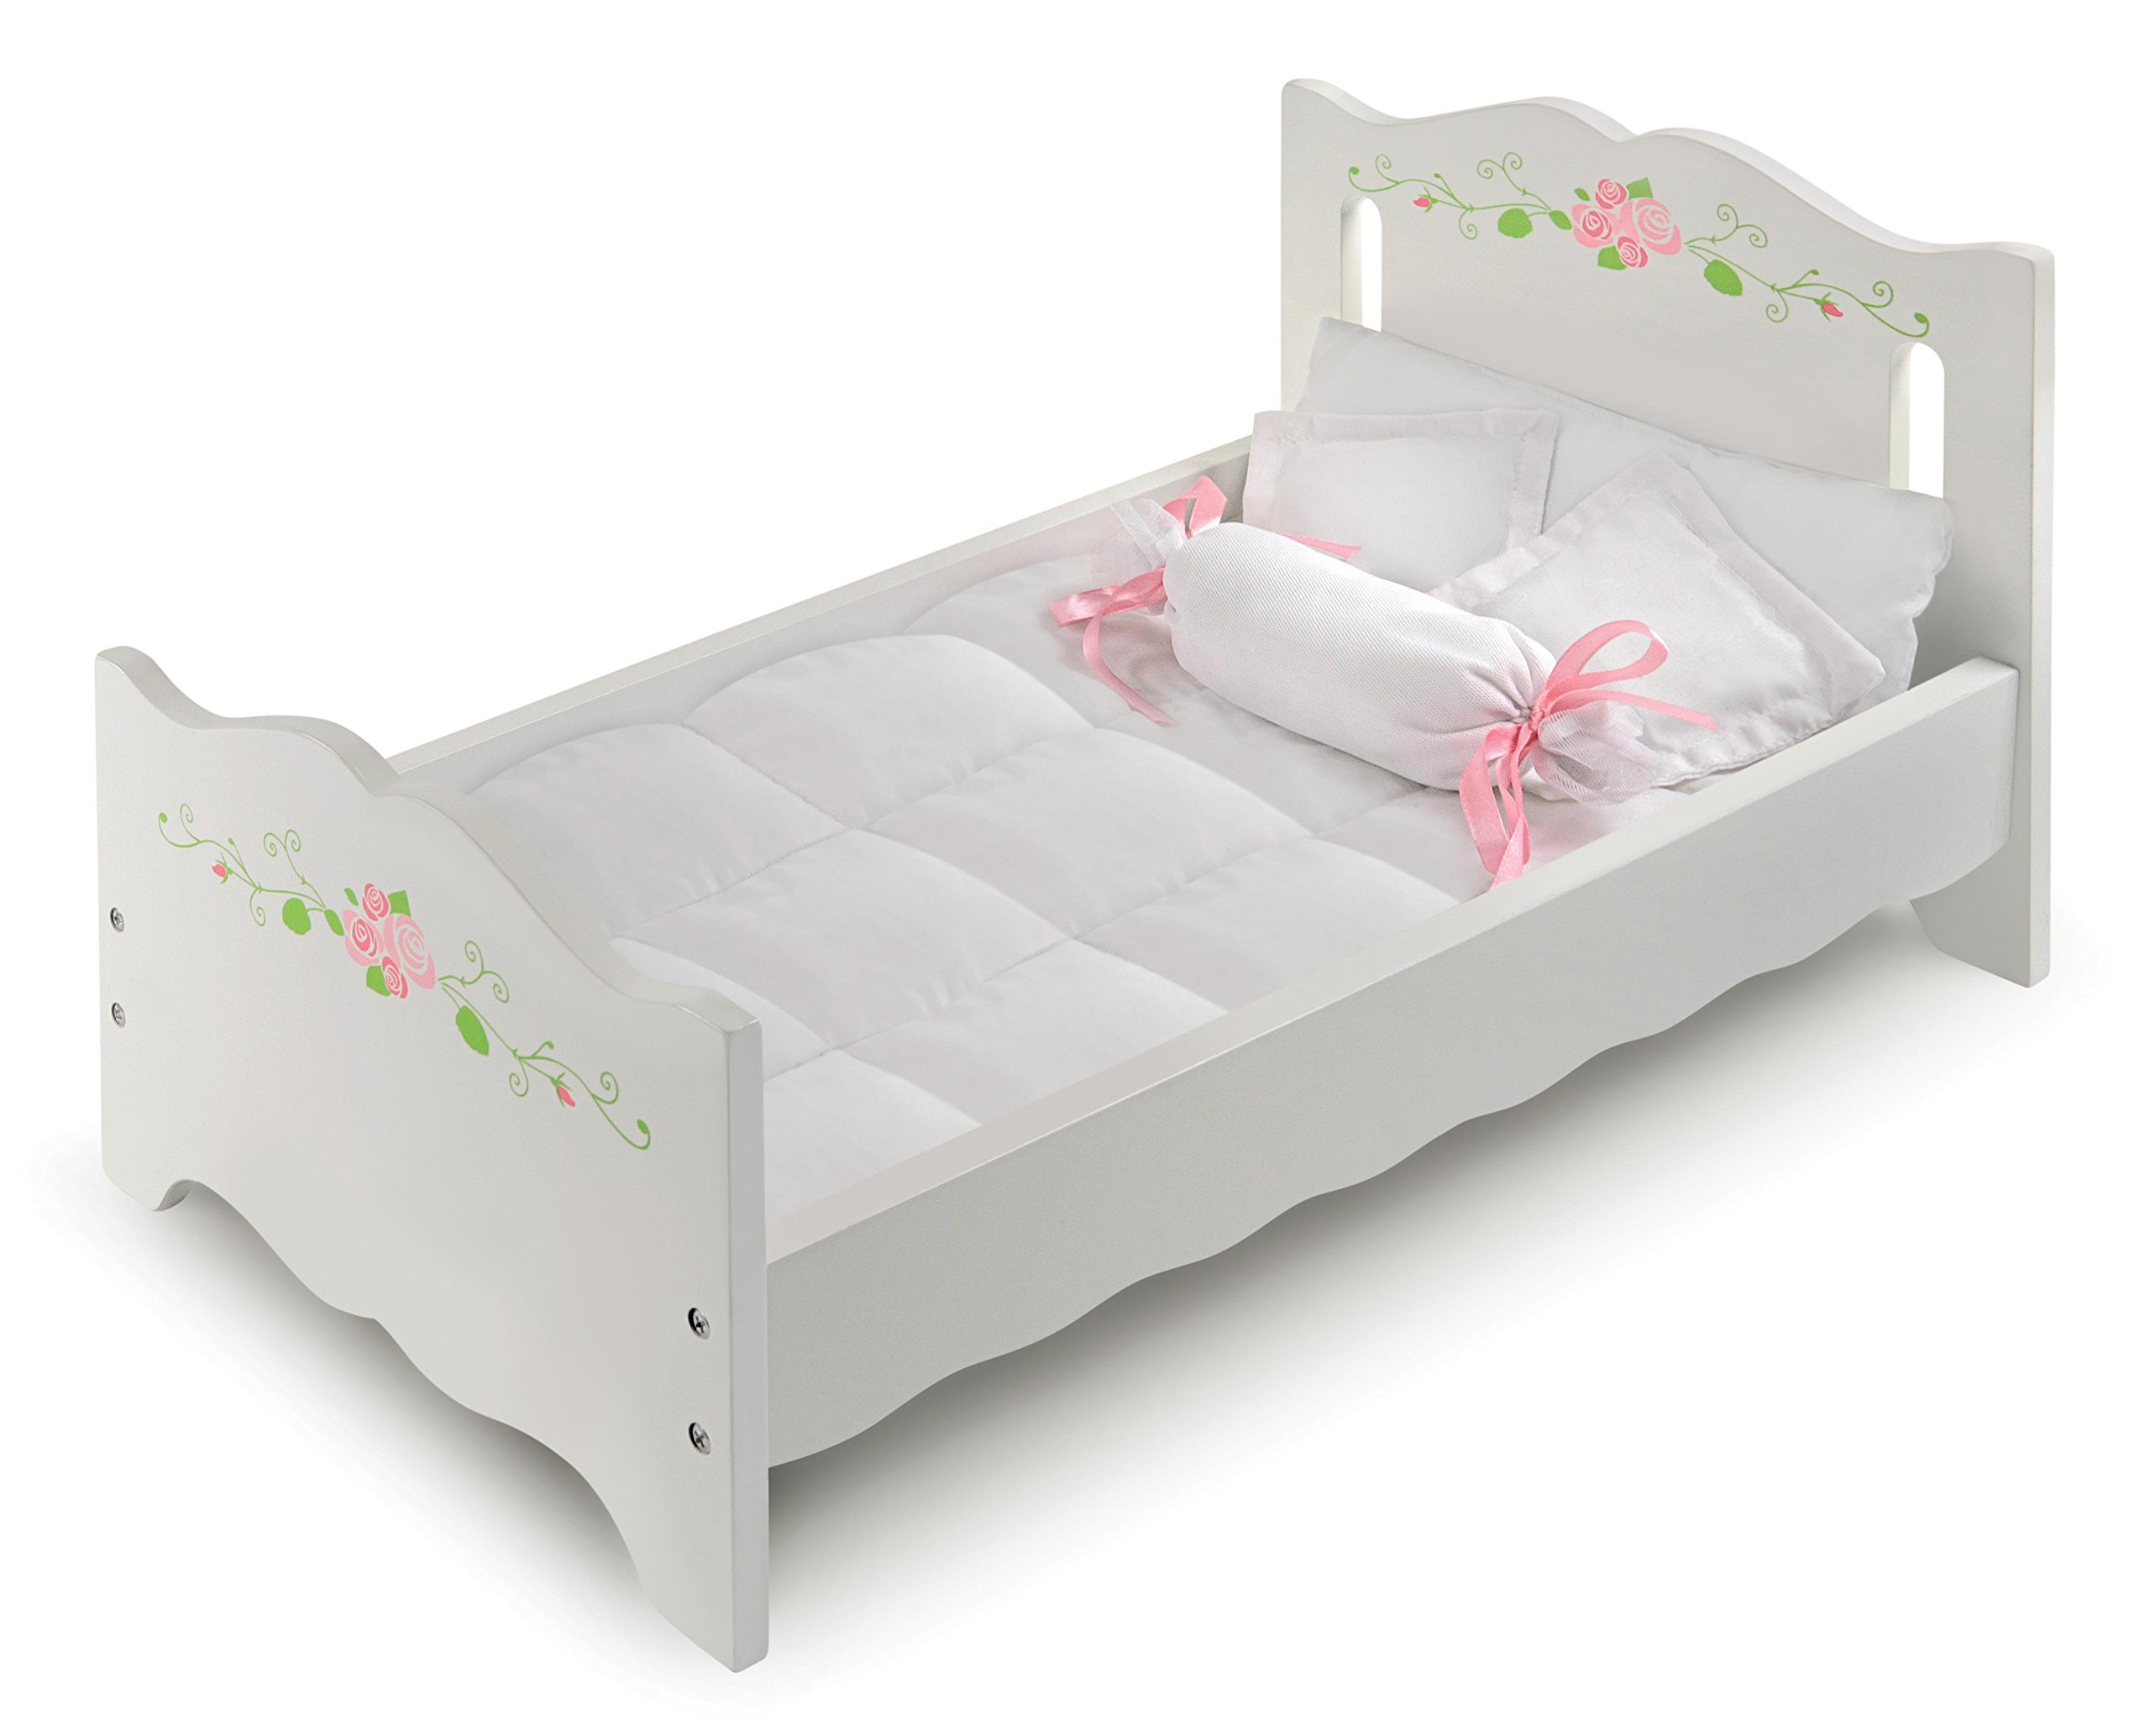 White Rose Doll Bed with Bedding and Free Personalization Kit (fits American Girl Dolls) by Badger Basket